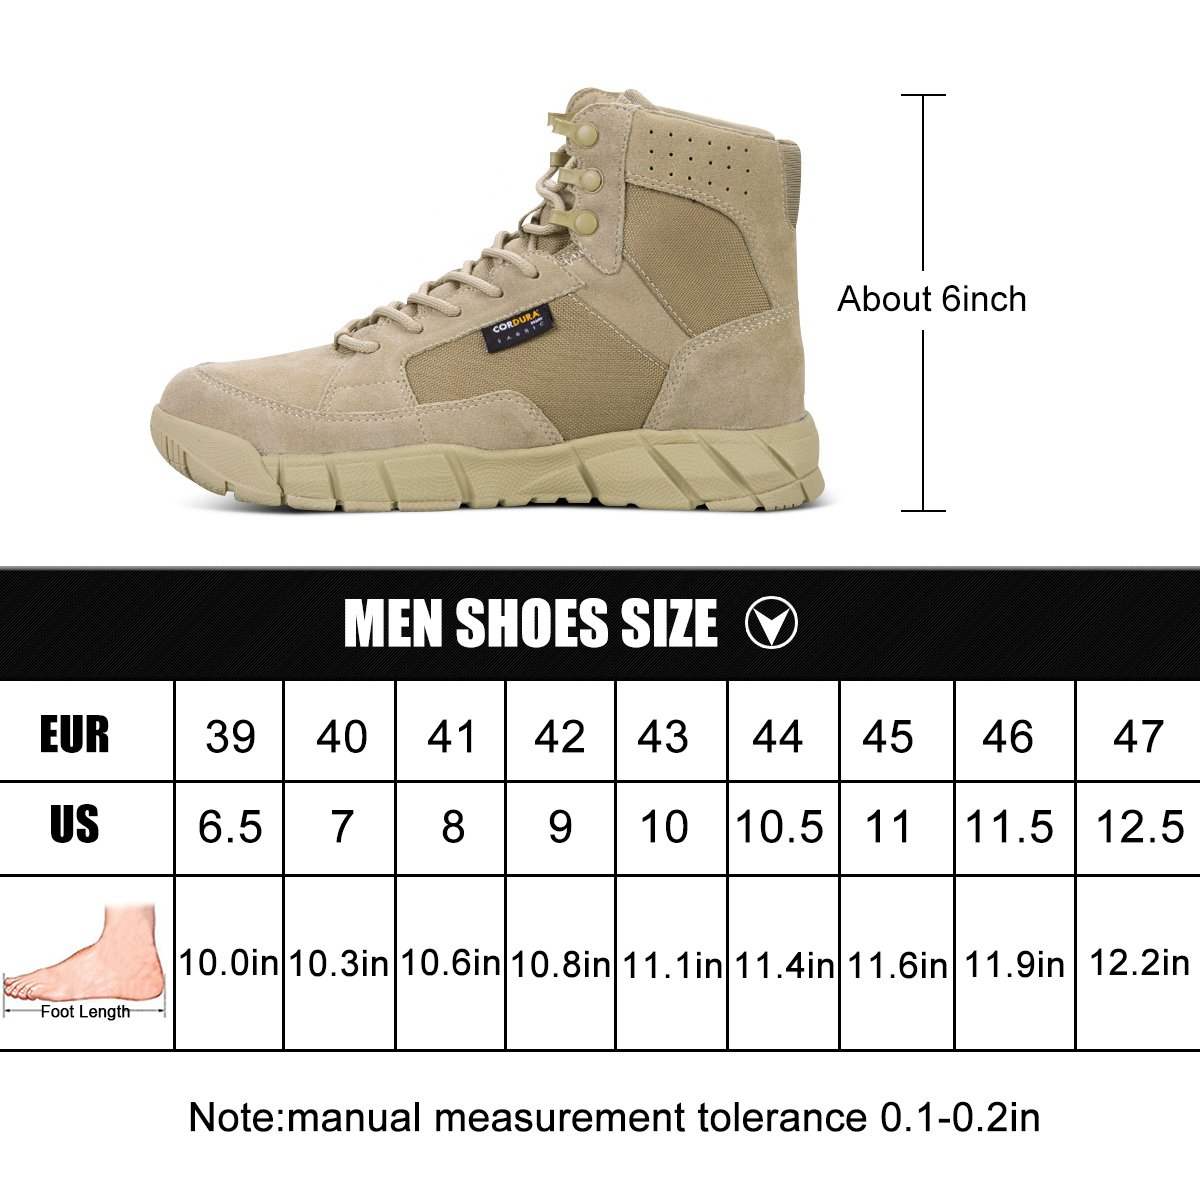 FREE SOLDIER Men's Tactical Boots 6'' inch Lightweight Military Boots for Hiking Work Boots Breathable Desert Boots (Tan, 7) by FREE SOLDIER (Image #7)